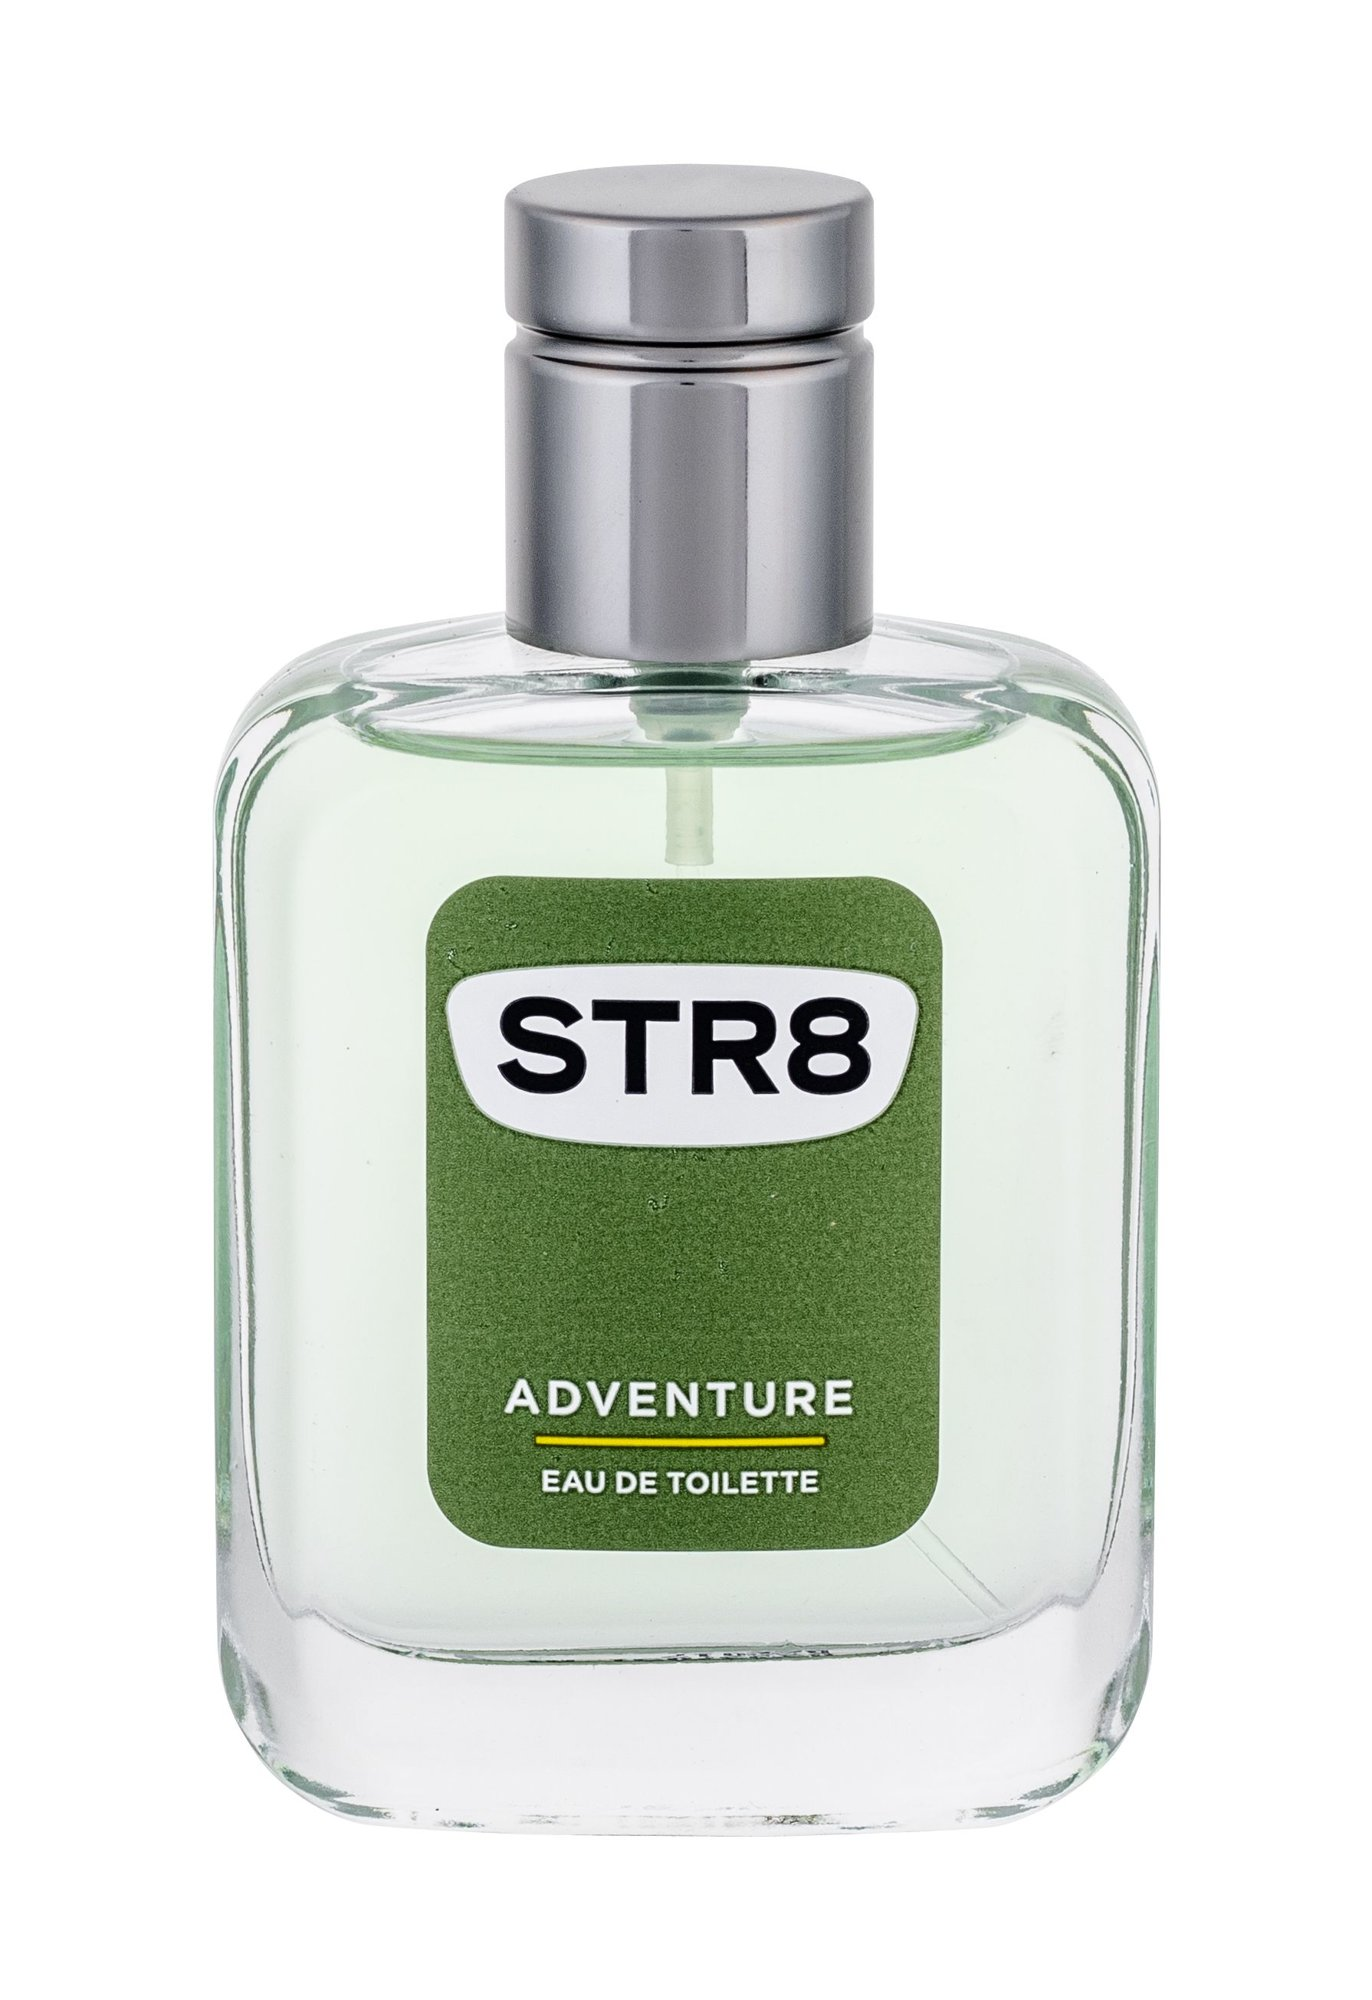 STR8 Adventure EDT 50ml